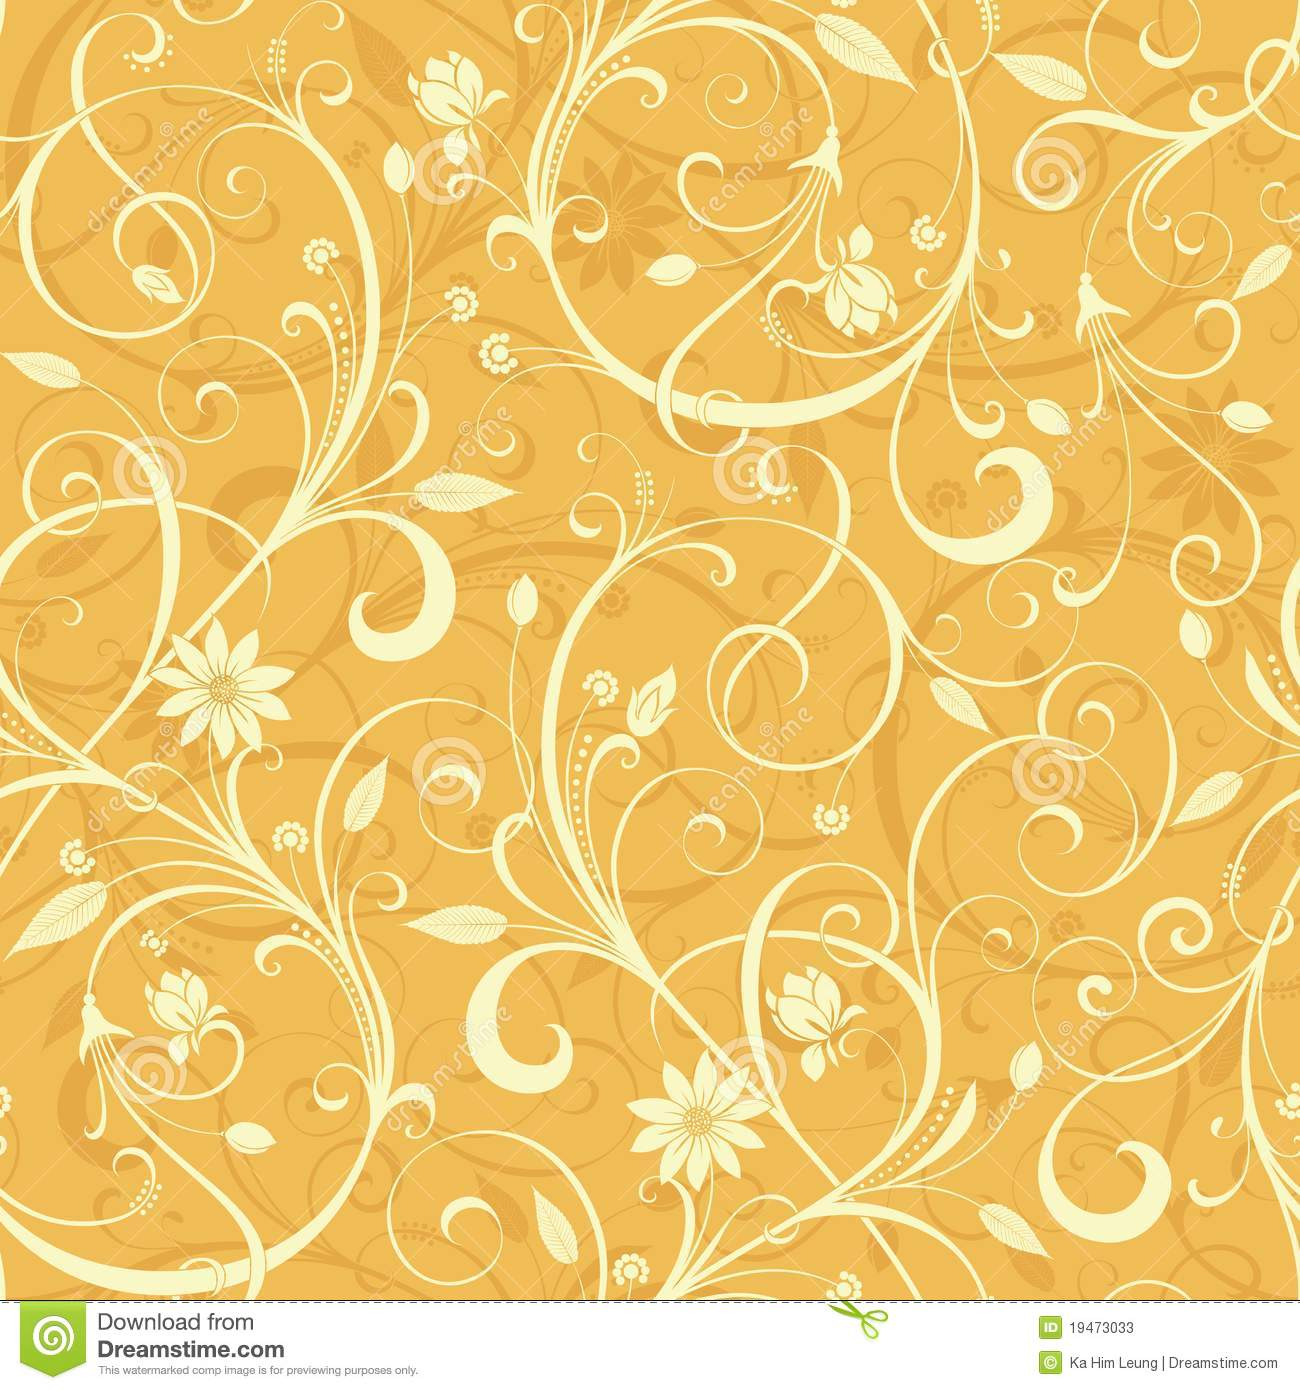 yellow floral pattern - photo #30